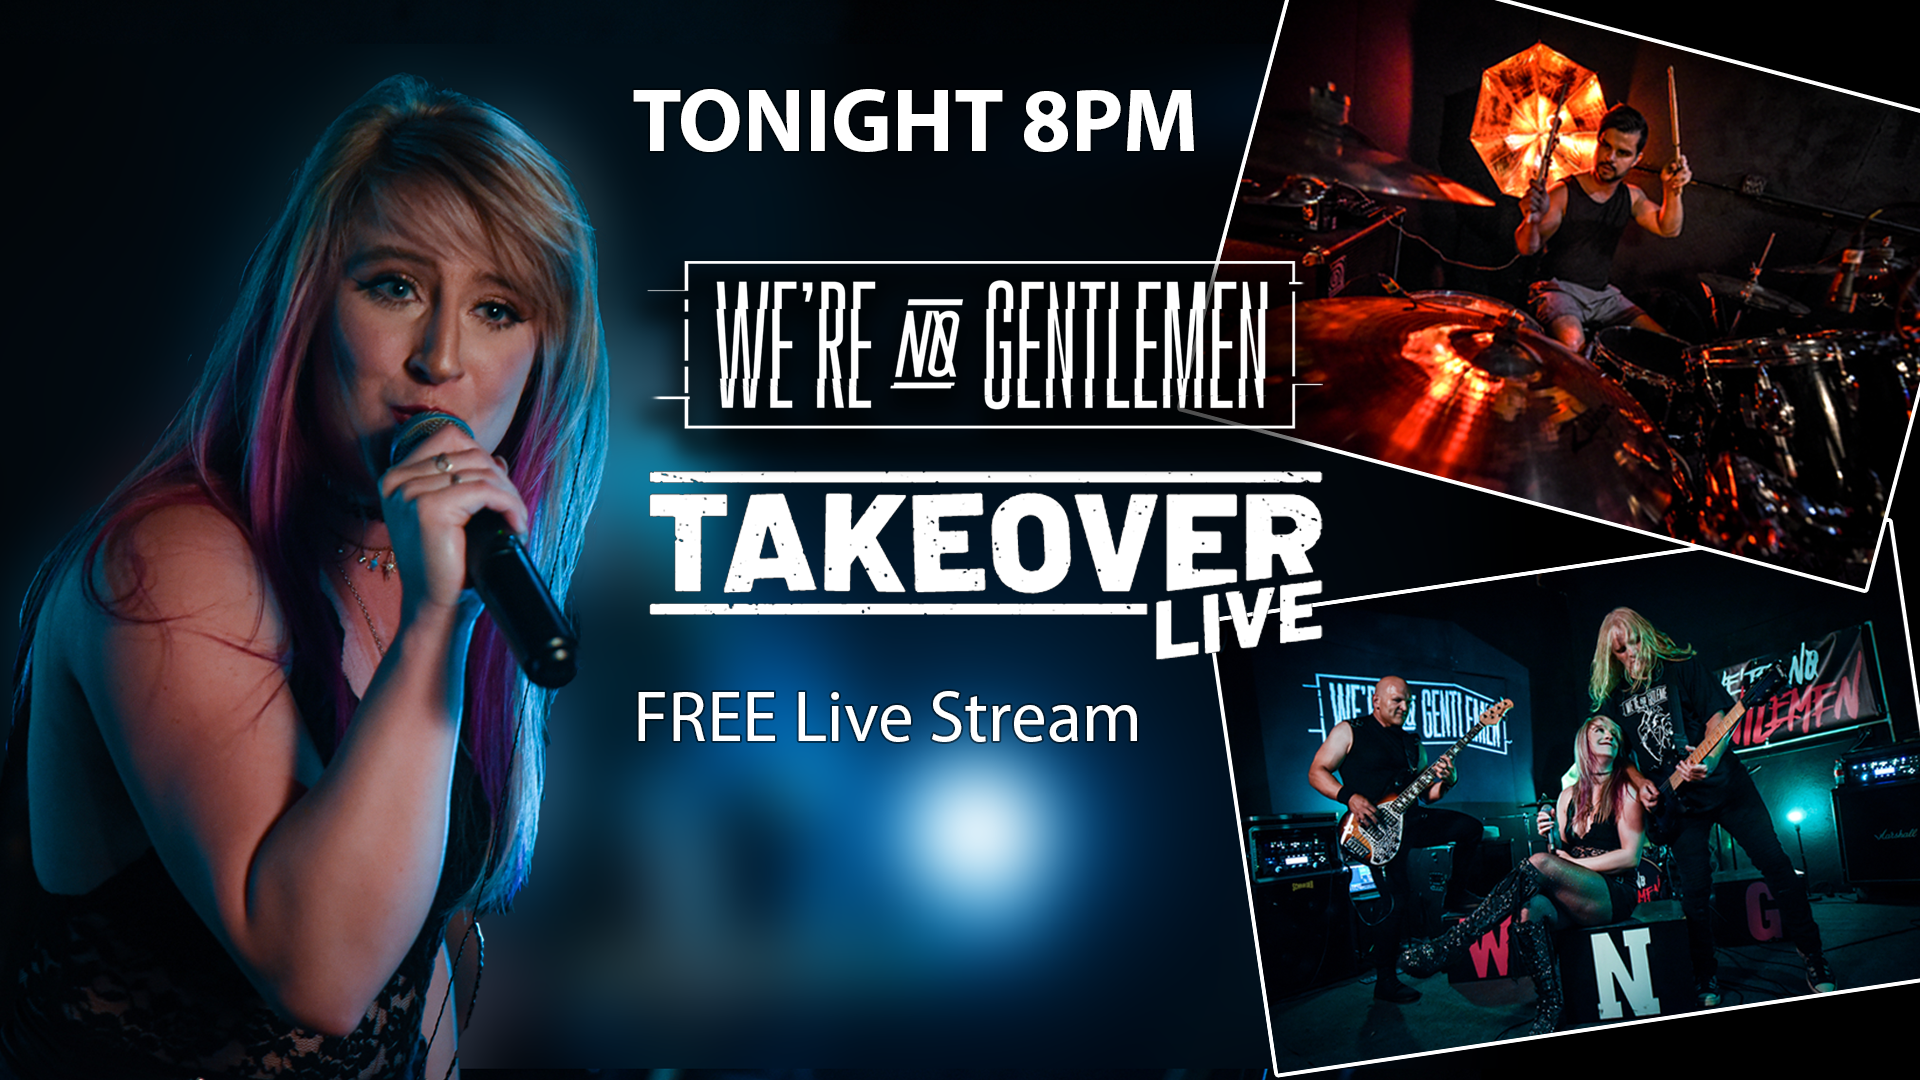 wng takeover live tonight